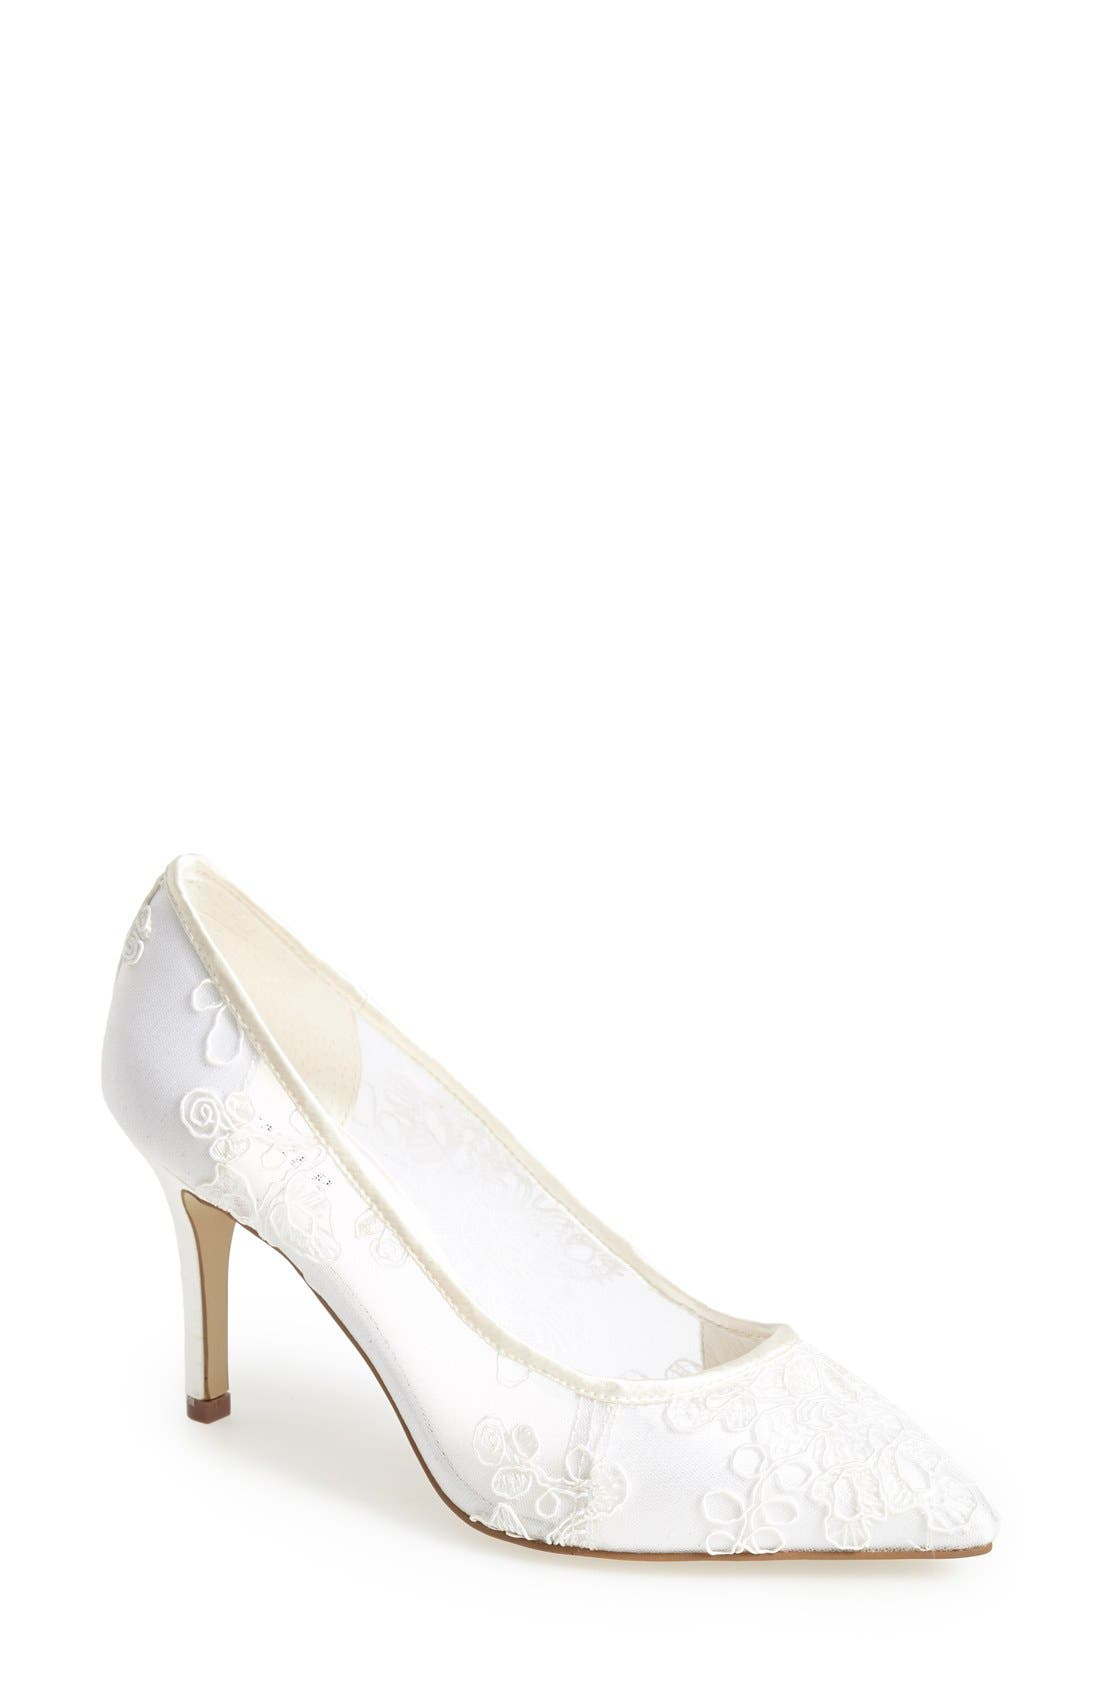 Alternate Image 1 Selected - Menbur 'Flora' Lace Overlay Pointy Toe Pump (Women)